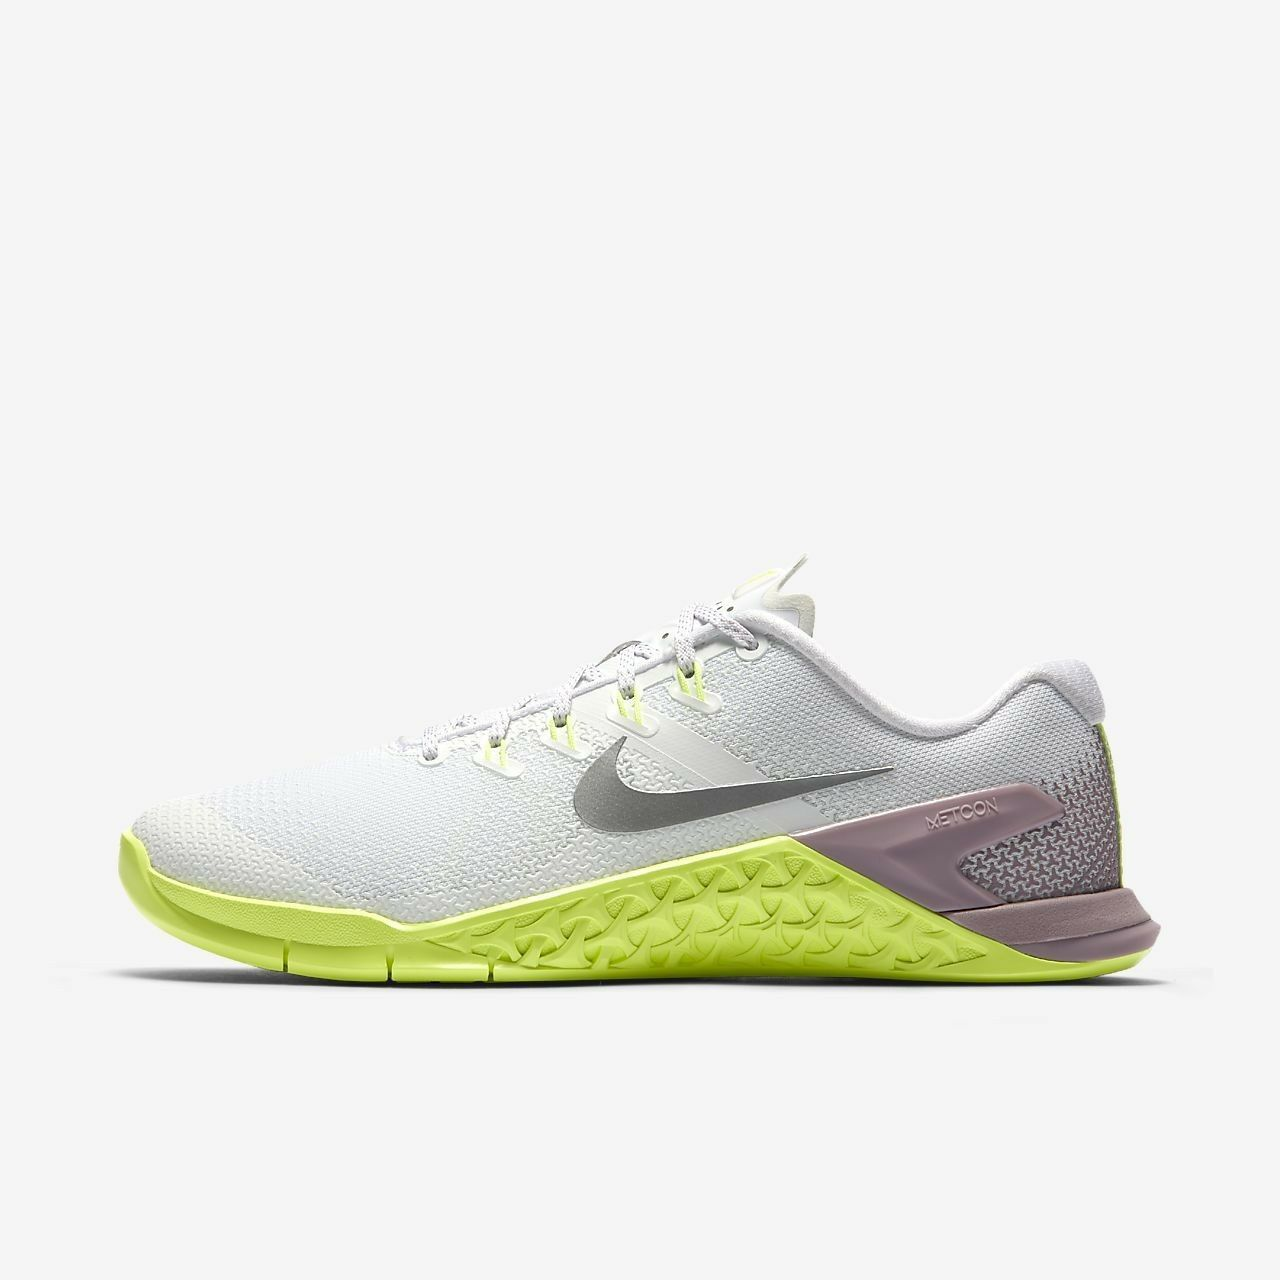 WOMEN'S NIKE METCON 4 SHOES white silver 924593 102 MSRP